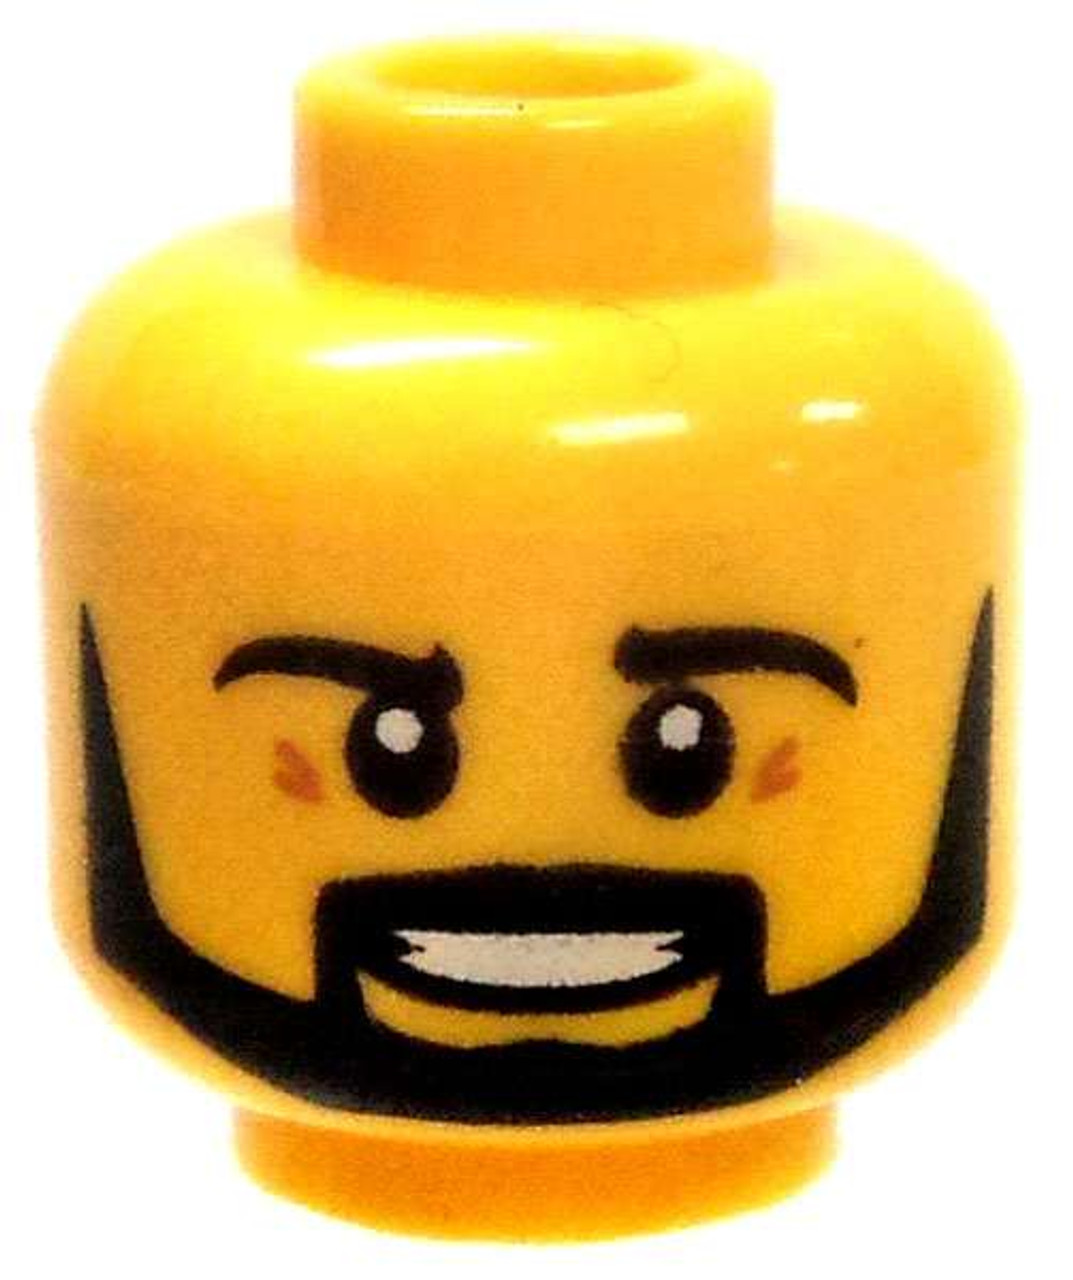 LEGO head flesh tone smiley